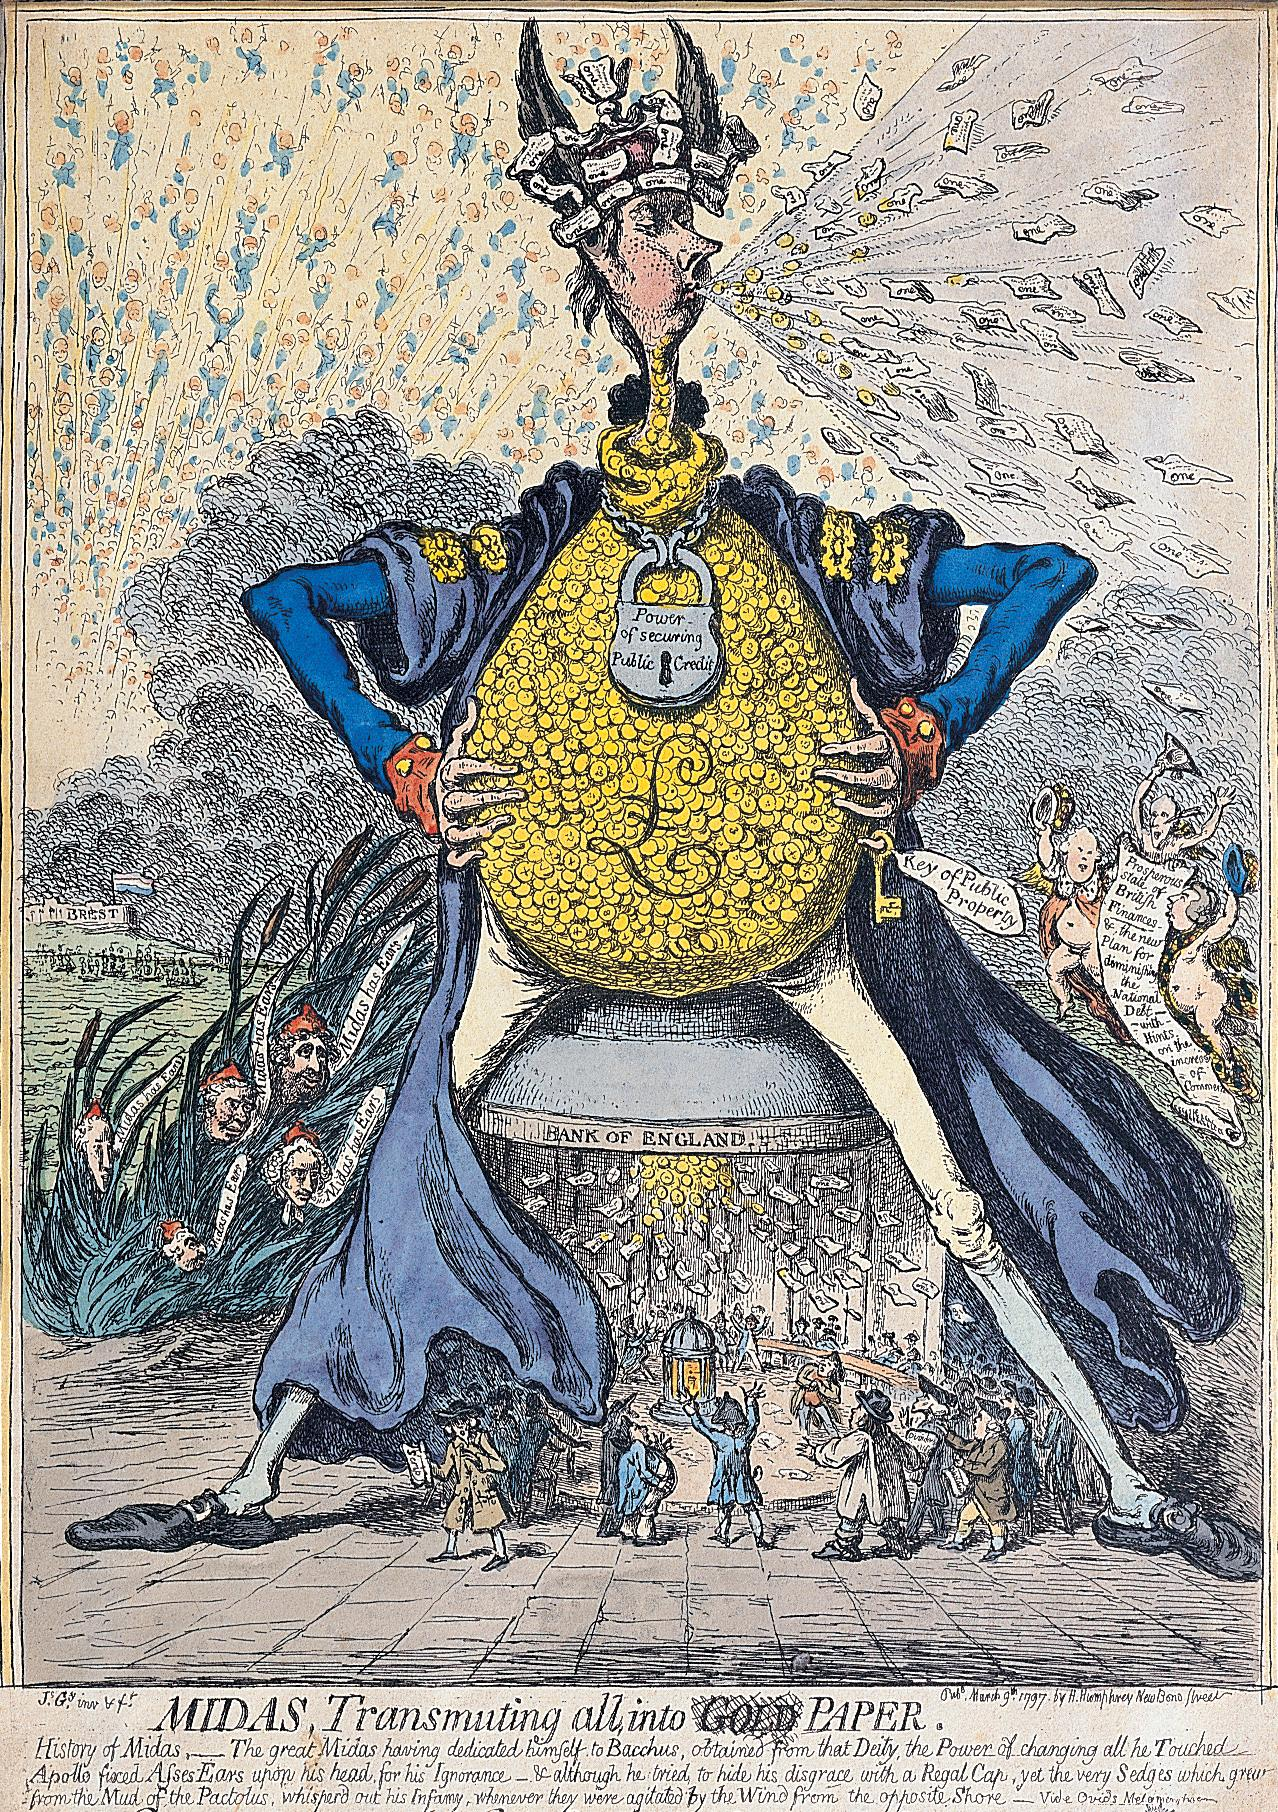 Midas, Transmuting all into Paper, James Gillray, 9 March 1797.